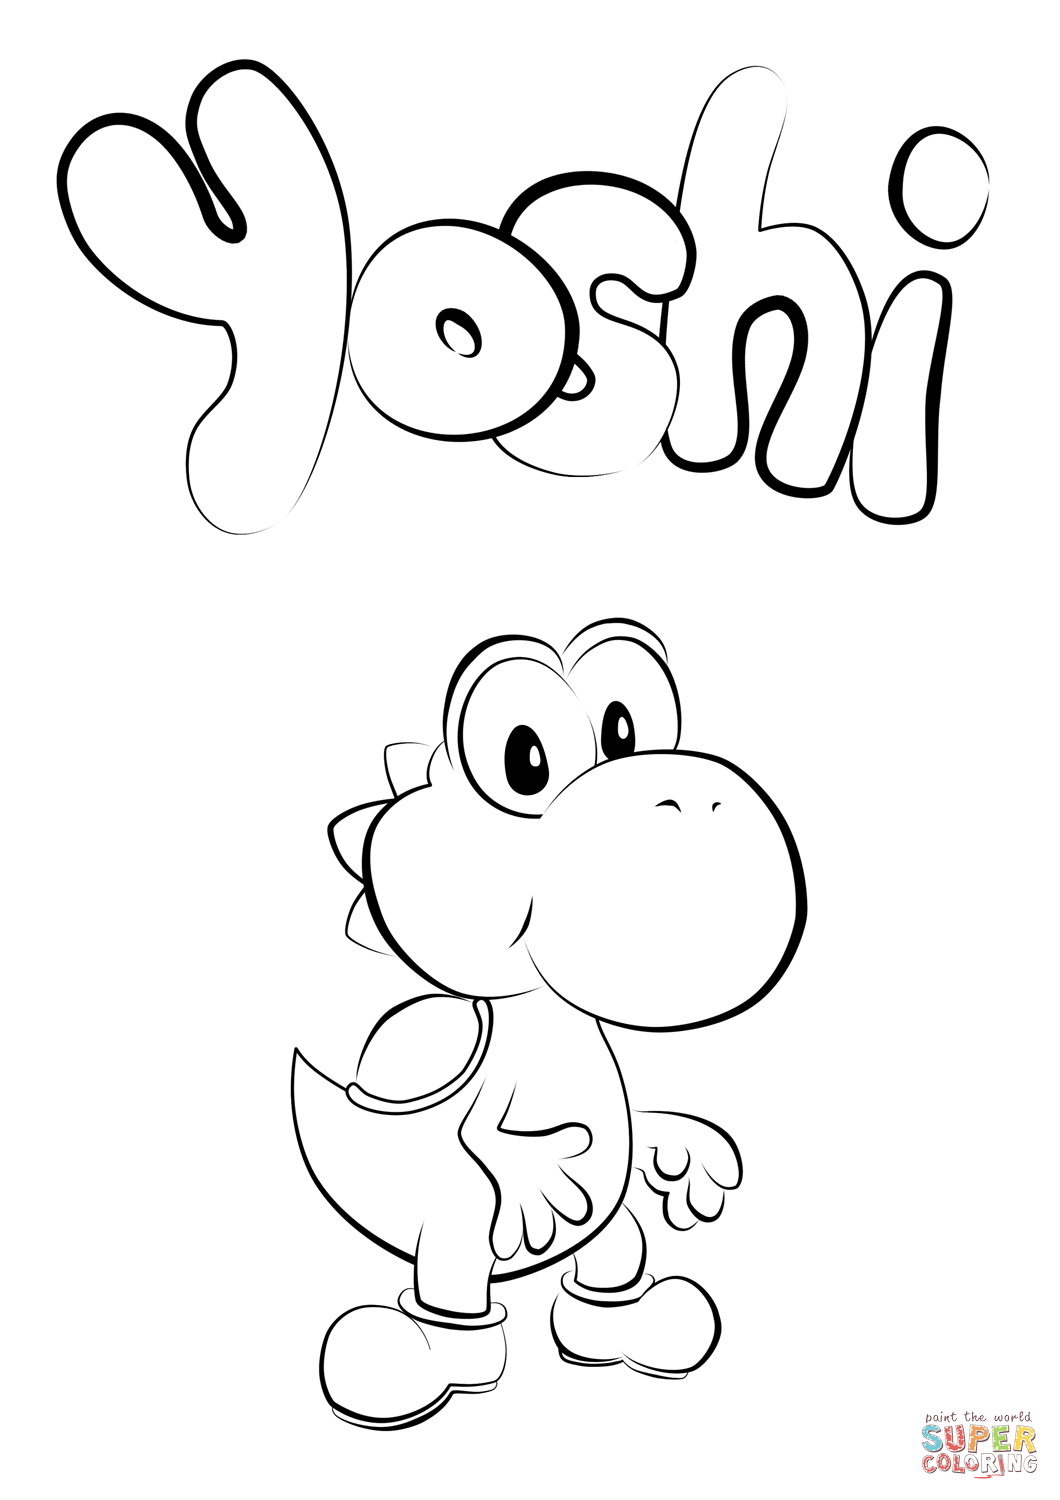 1060x1500 Baby Yoshi Coloring Page Free Printable Pages Inside